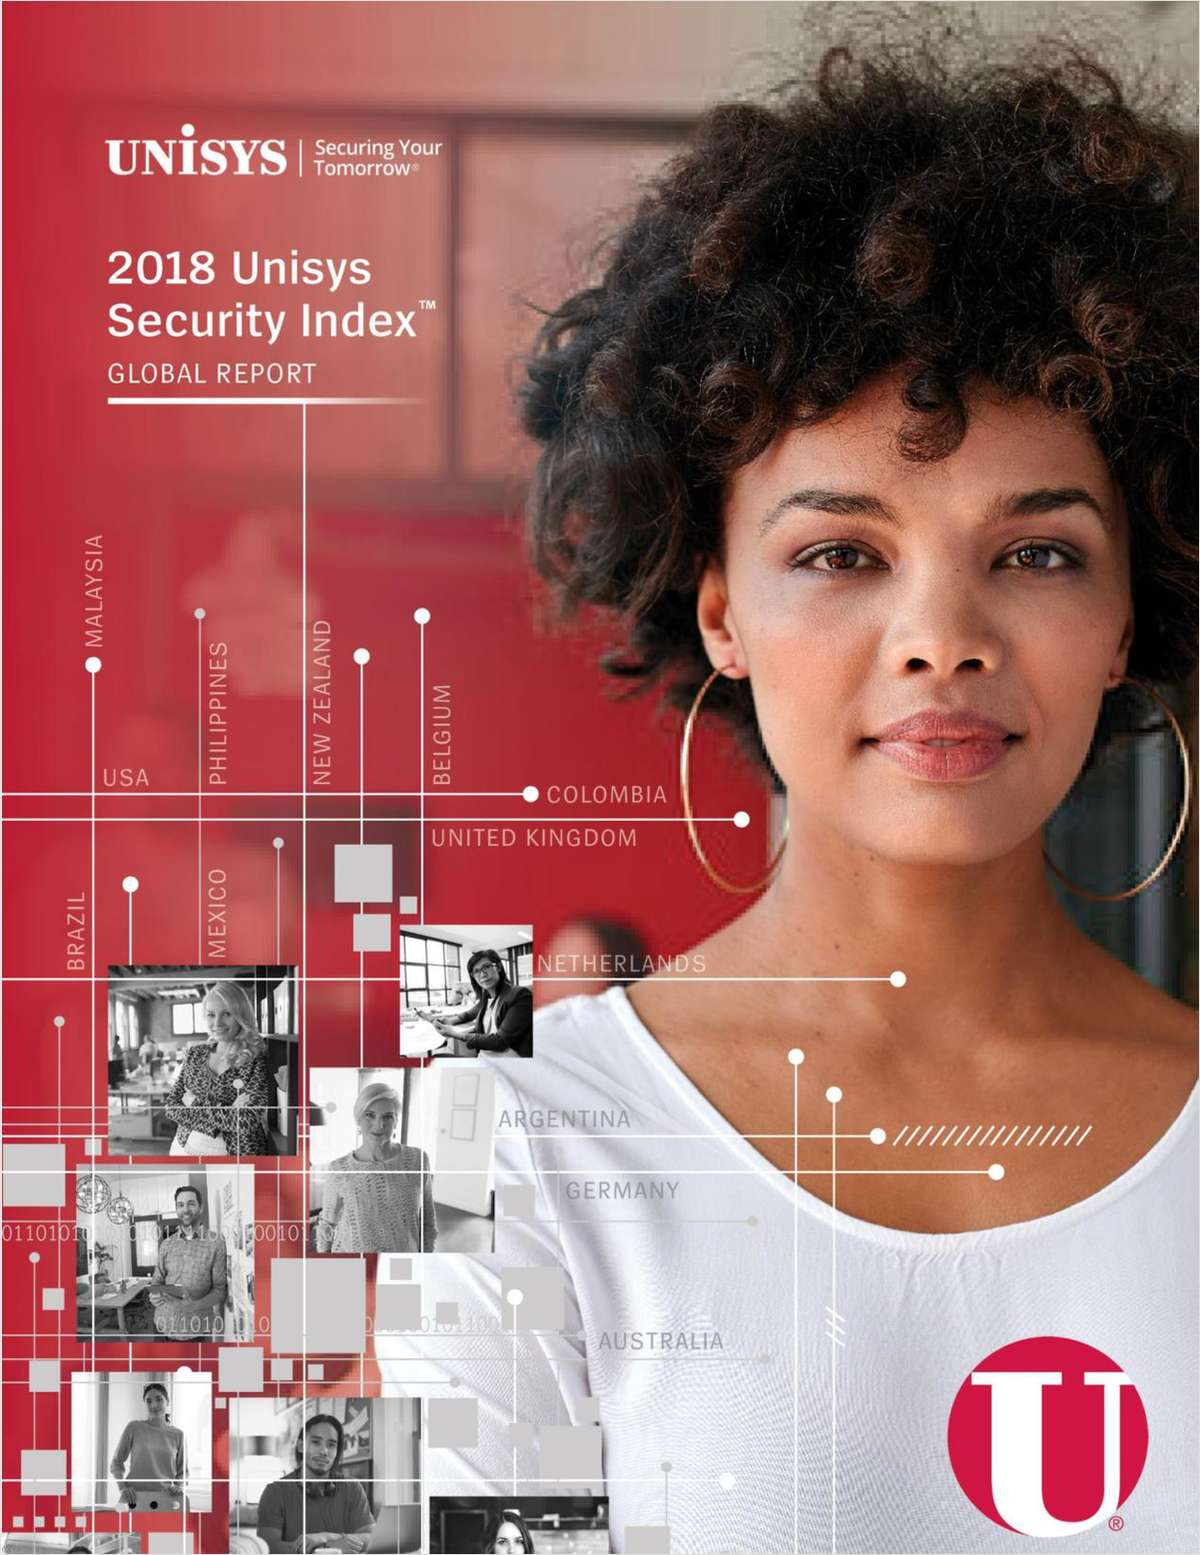 2018 Unisys Security Index Global Report